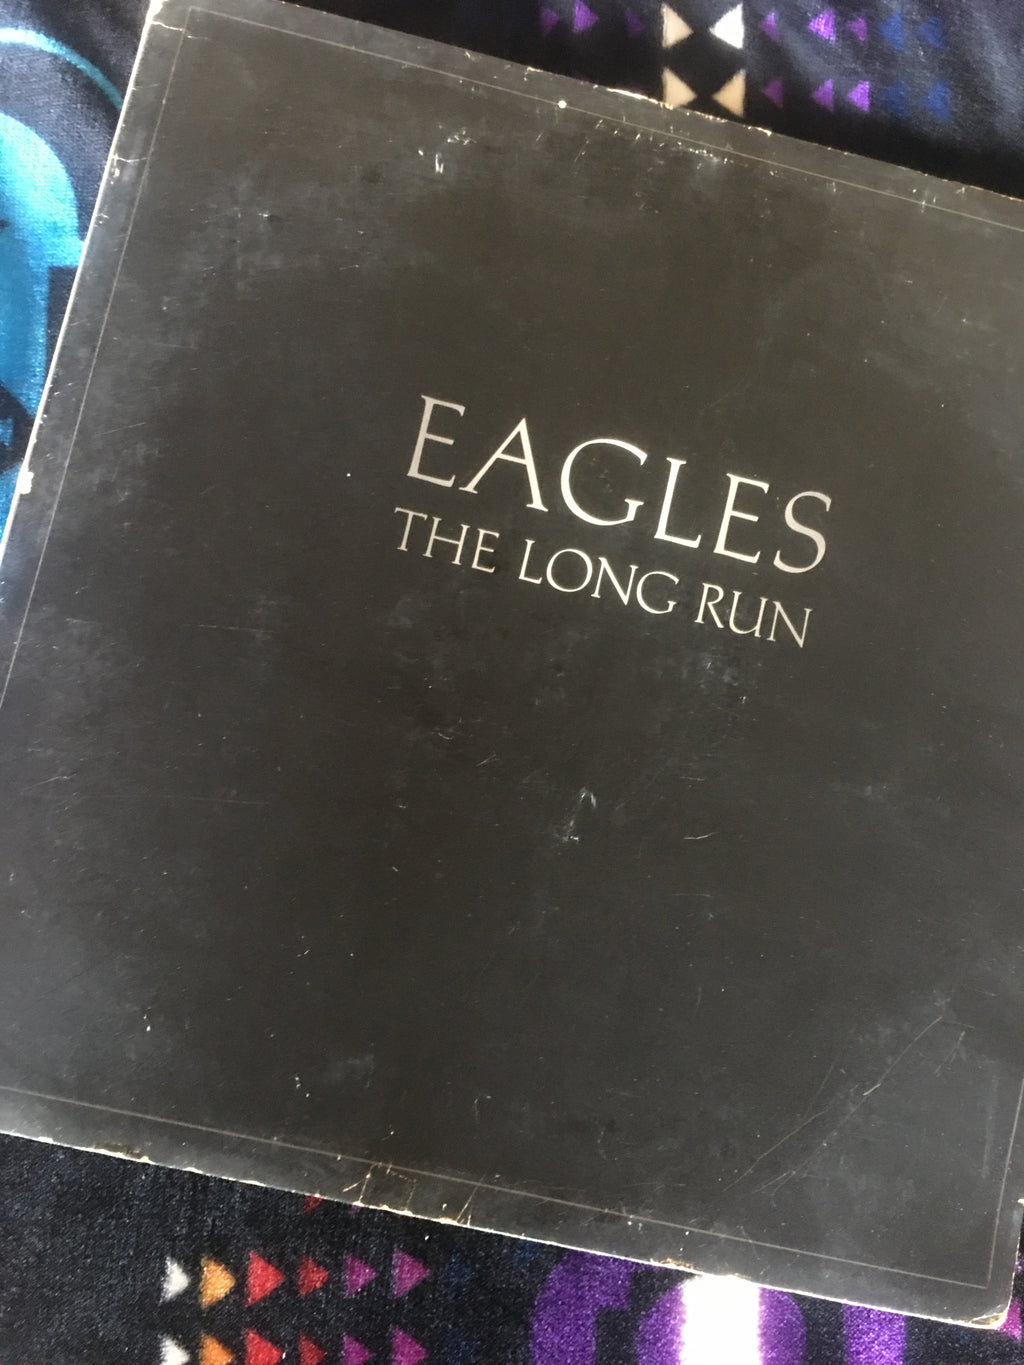 EAGLES THE LONG RUN